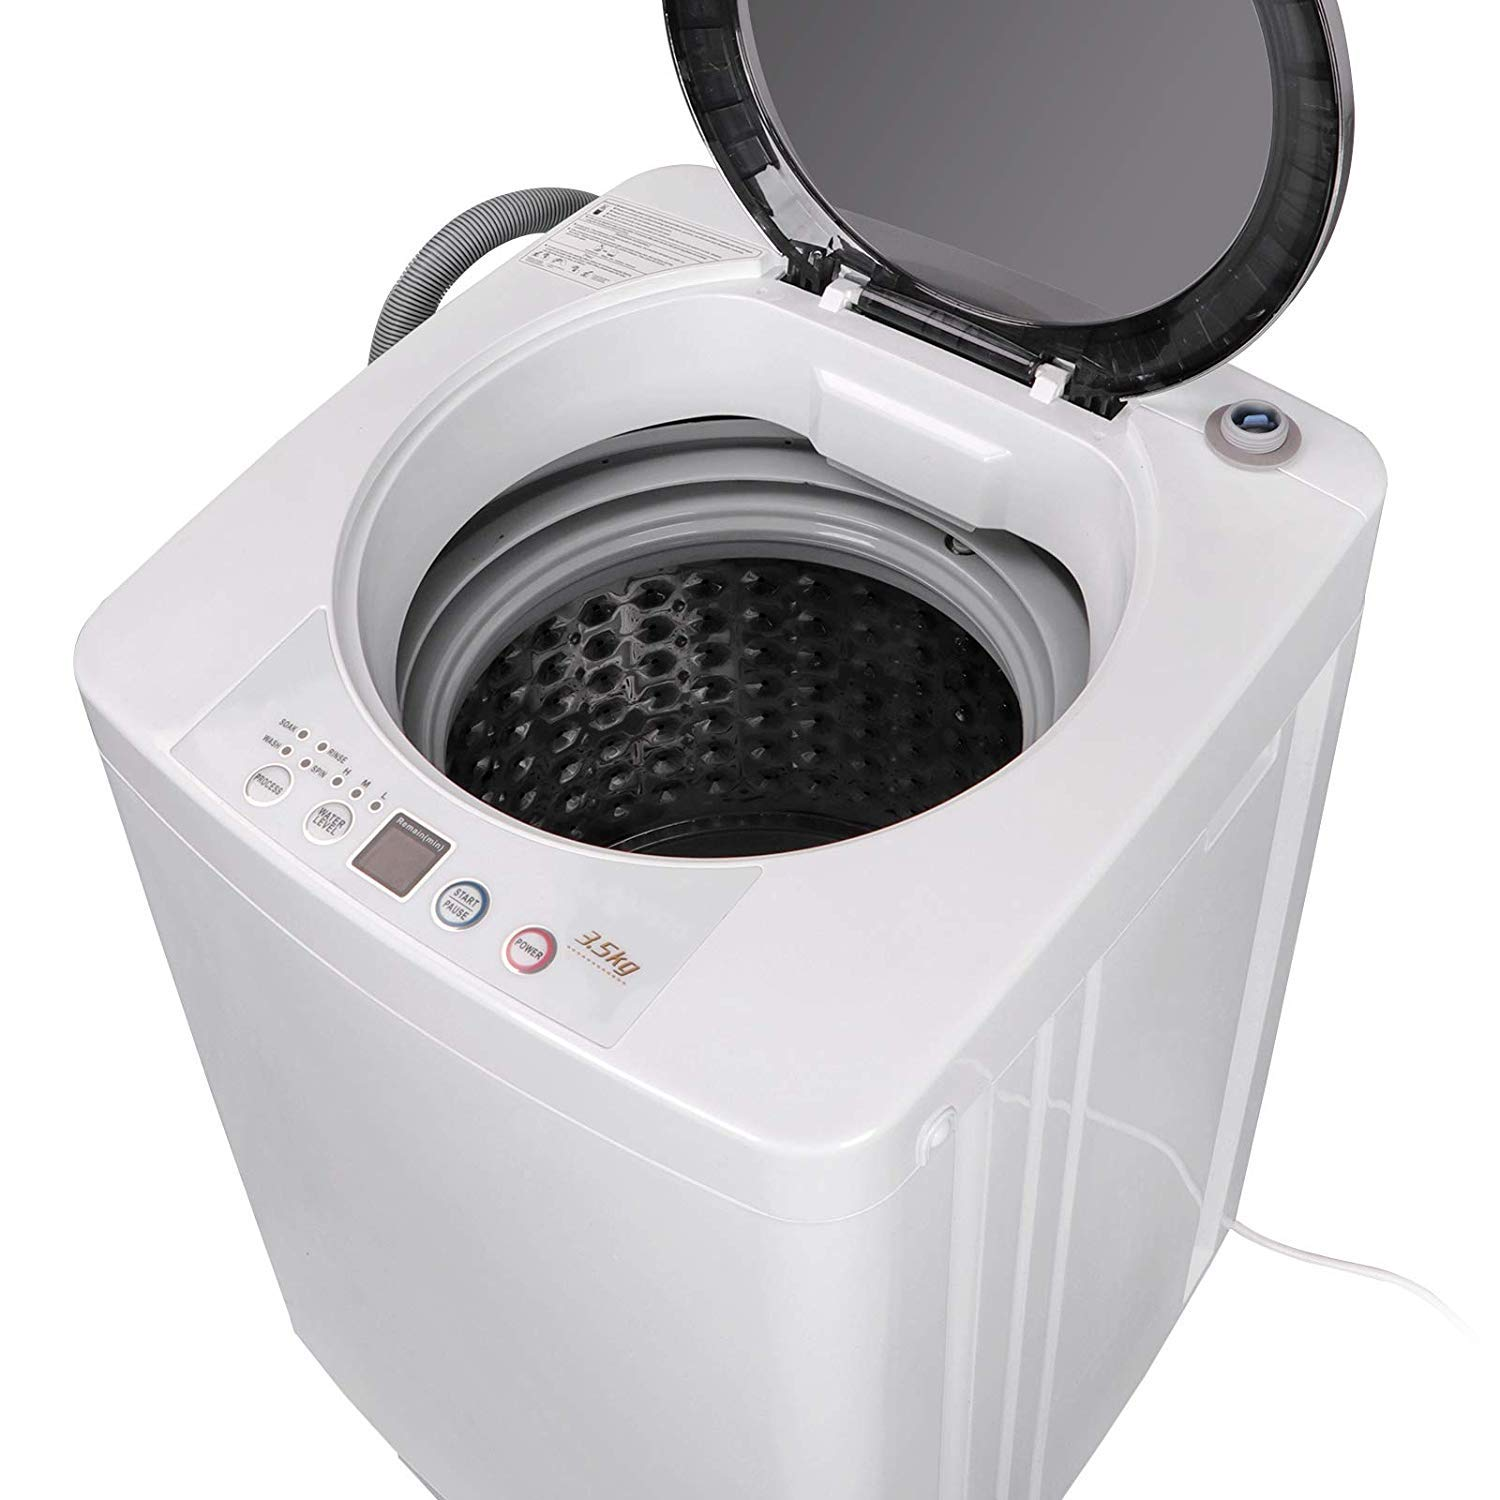 JupiterForce Portable Washer Machine Full-Automatic Rotary Dewater Drying Laundry Washer, 8Lbs by JupiterForce